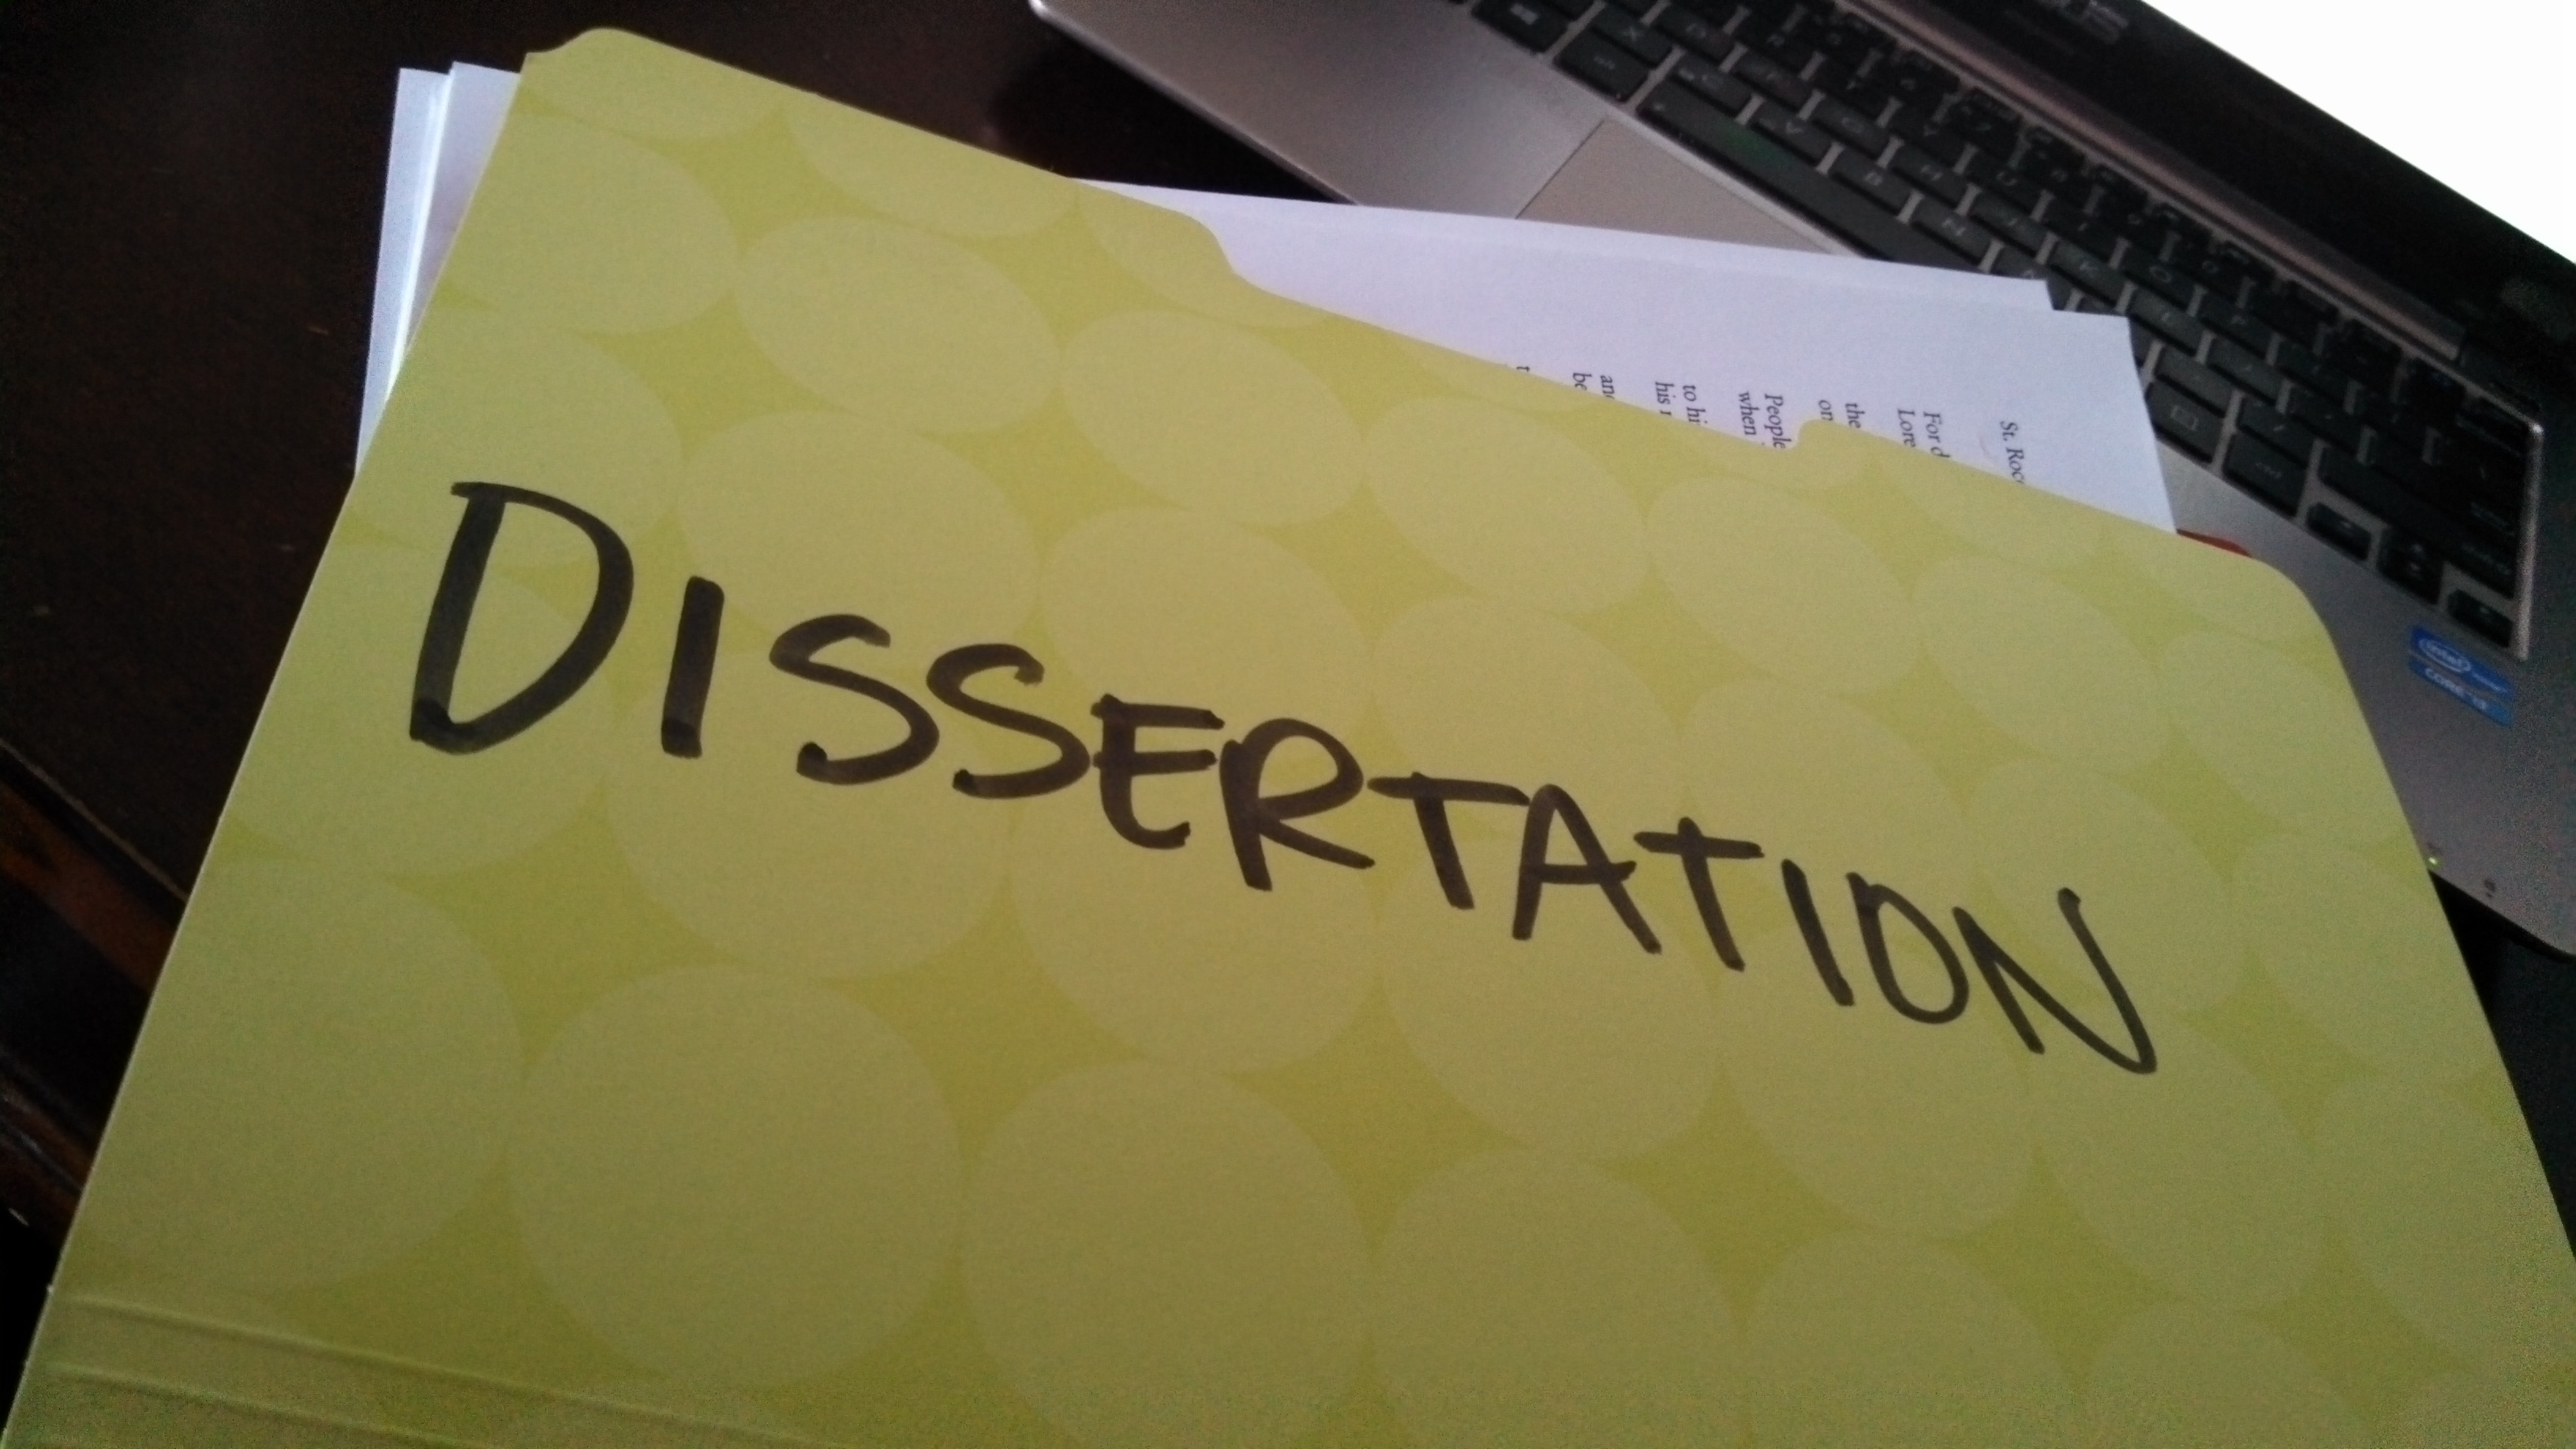 dissertation writing services in by academic writers thesis writing services in